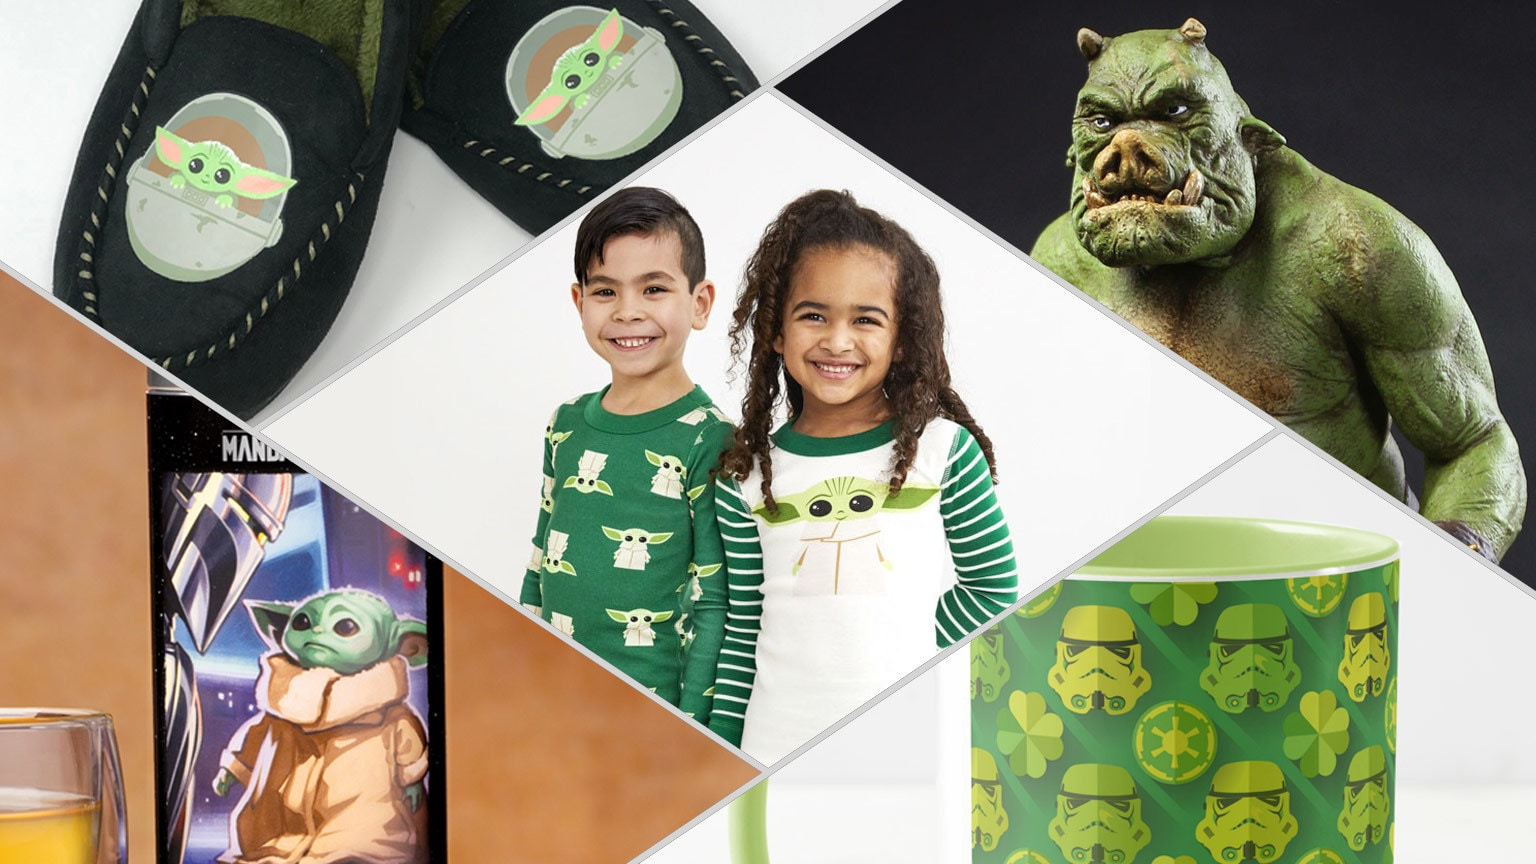 Celebrate St. Patrick's Day And Beyond with the Star Wars Green Gift Guide